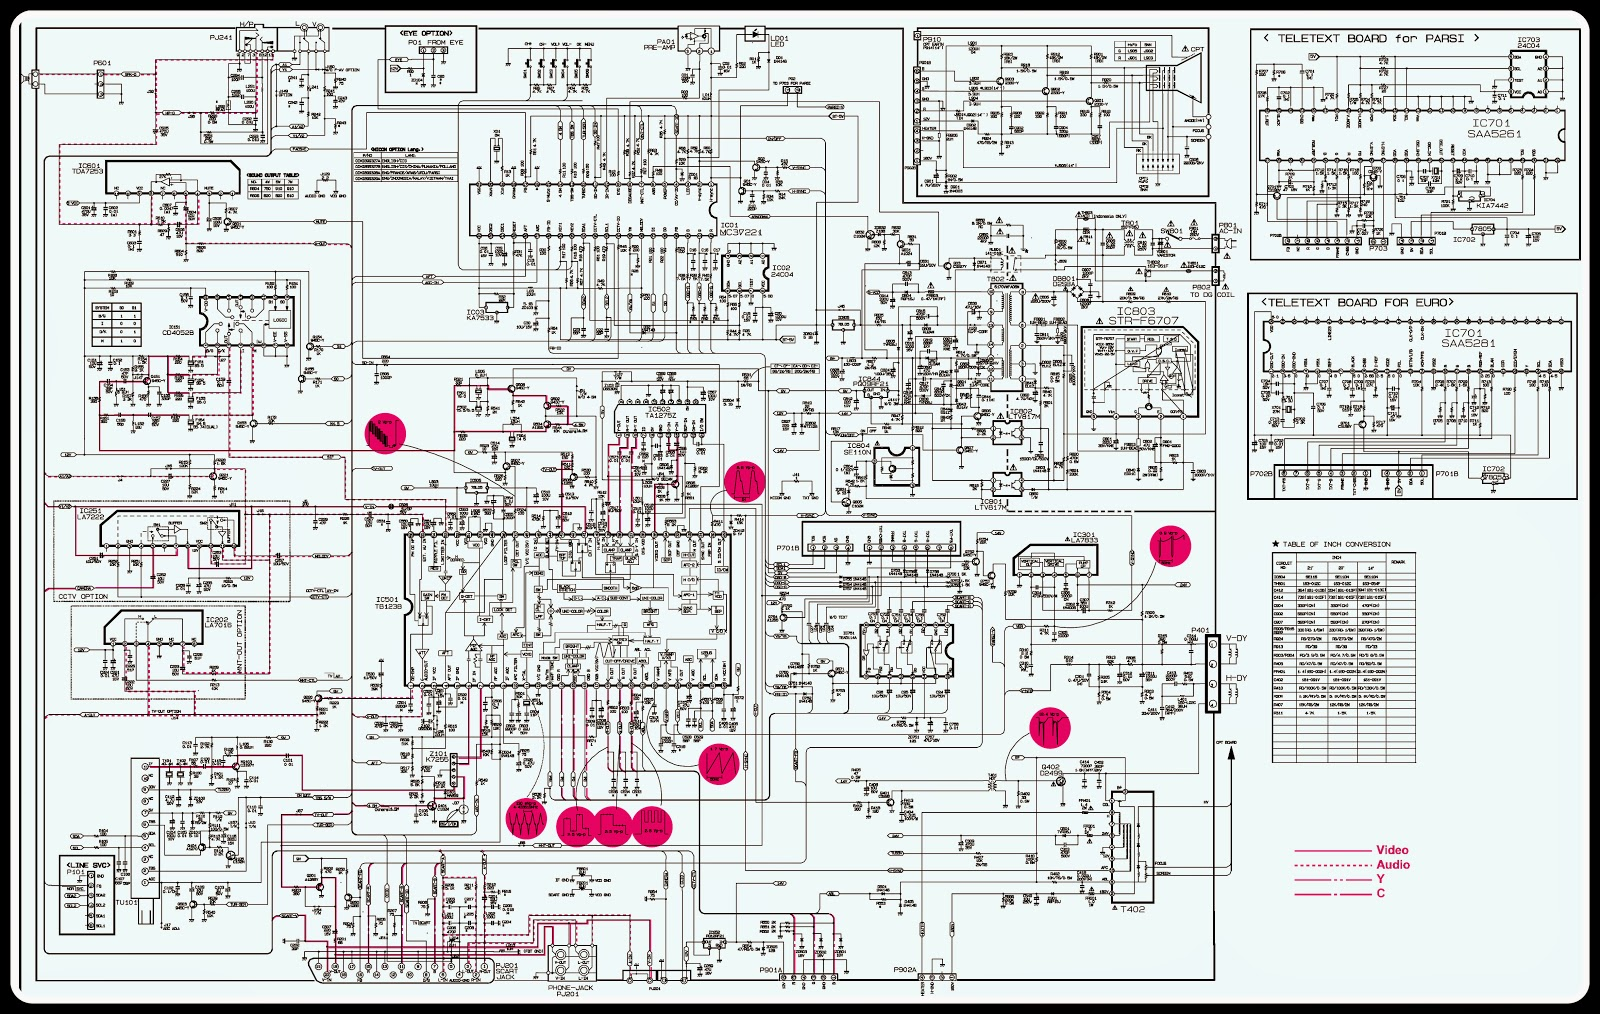 Lg wiring diagrams wiring diagrams schematics crt wiring diagram wiring diagrams schematics lg cf20f schematic circuit diagram 20 inch crt tv electro help click on the schematic to zoom in crt wiring cheapraybanclubmaster Image collections